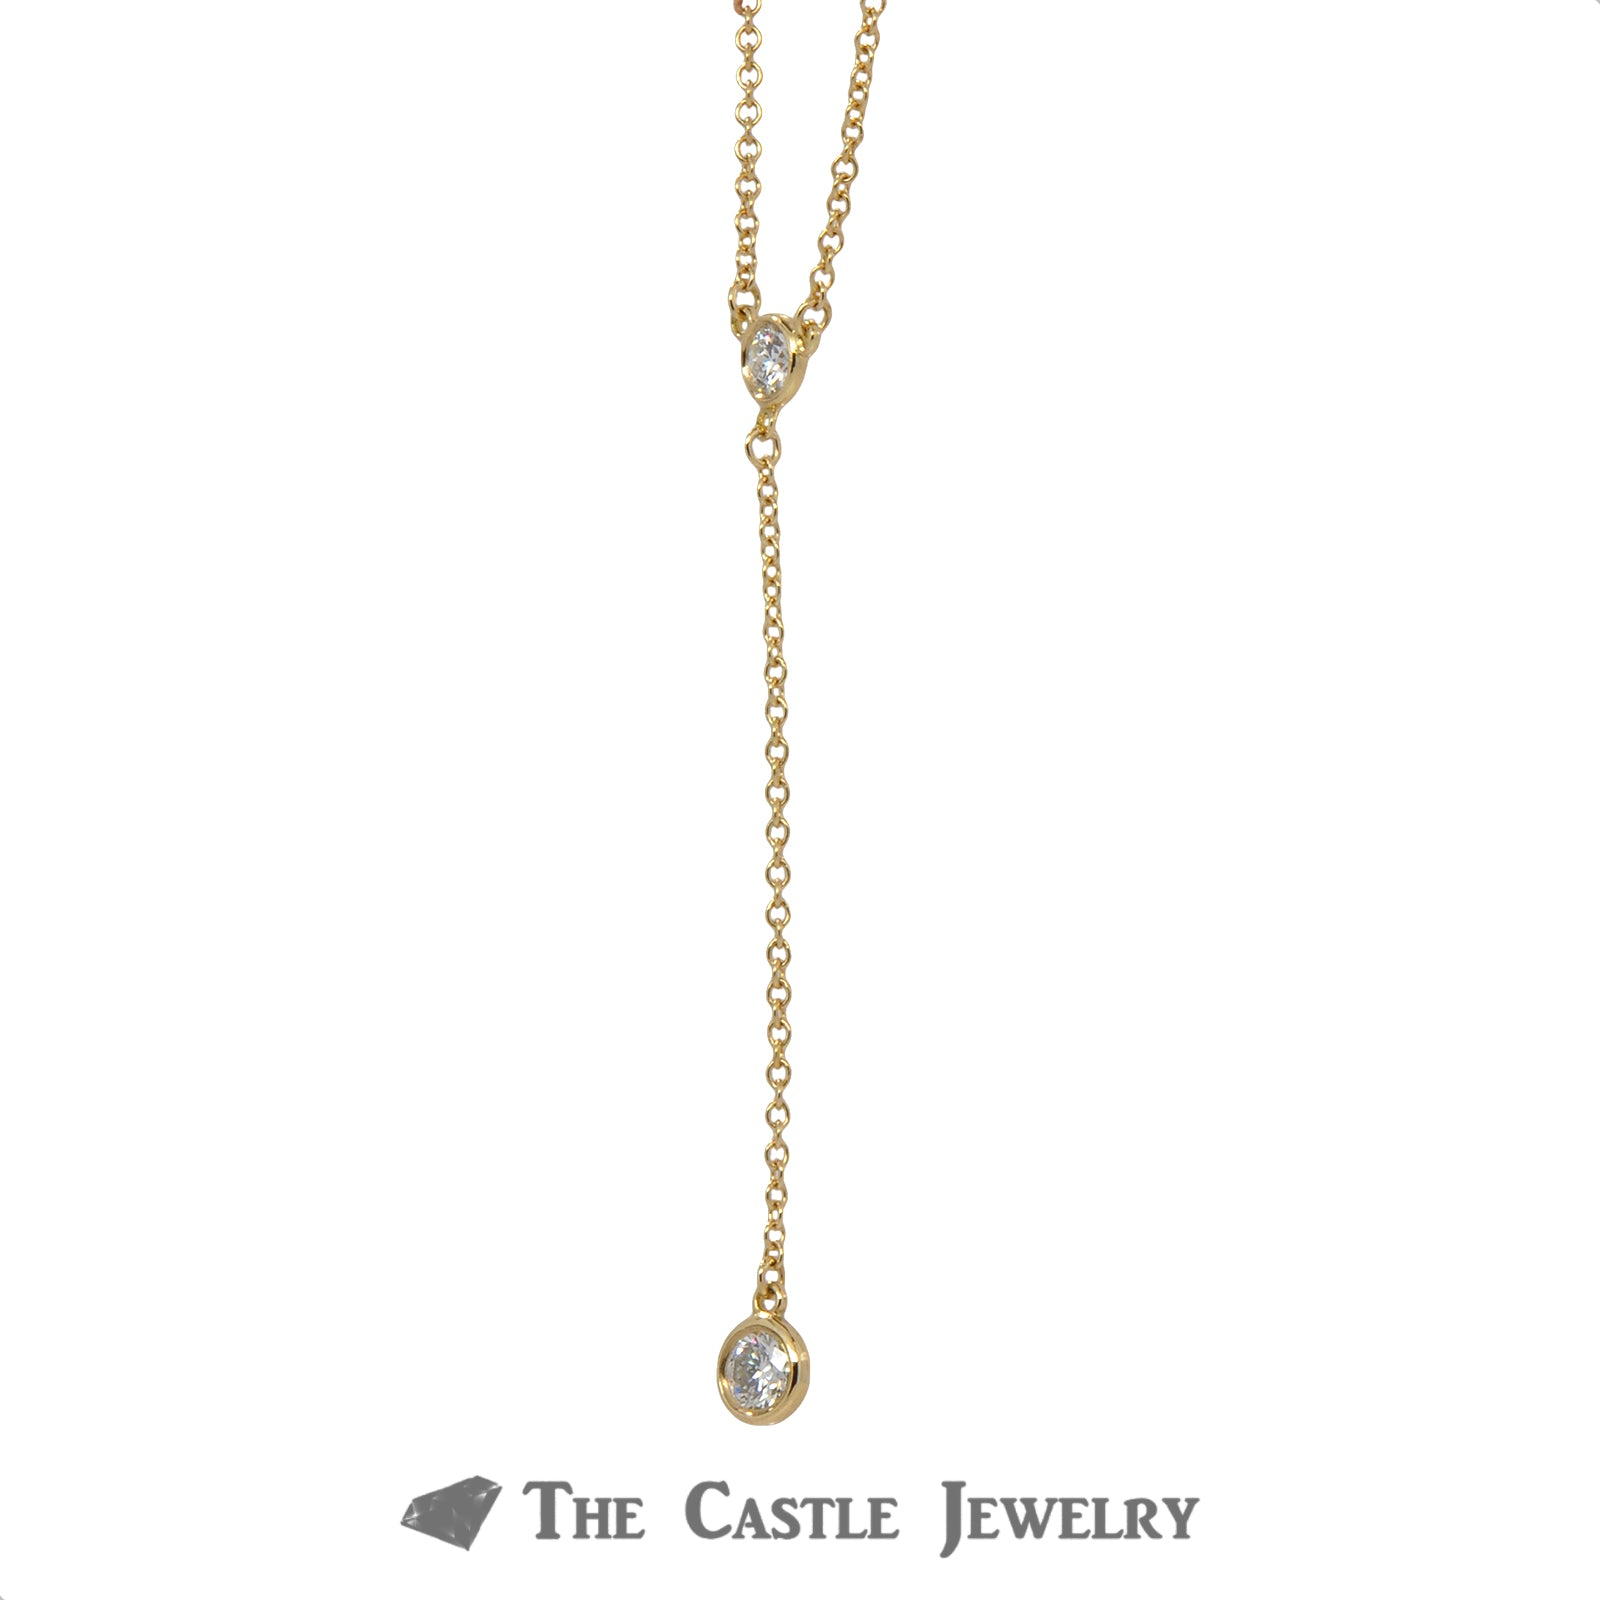 Tiffany & Co. Delicate Drop Necklace with .25cttw Diamonds in 18k Yellow Gold-2